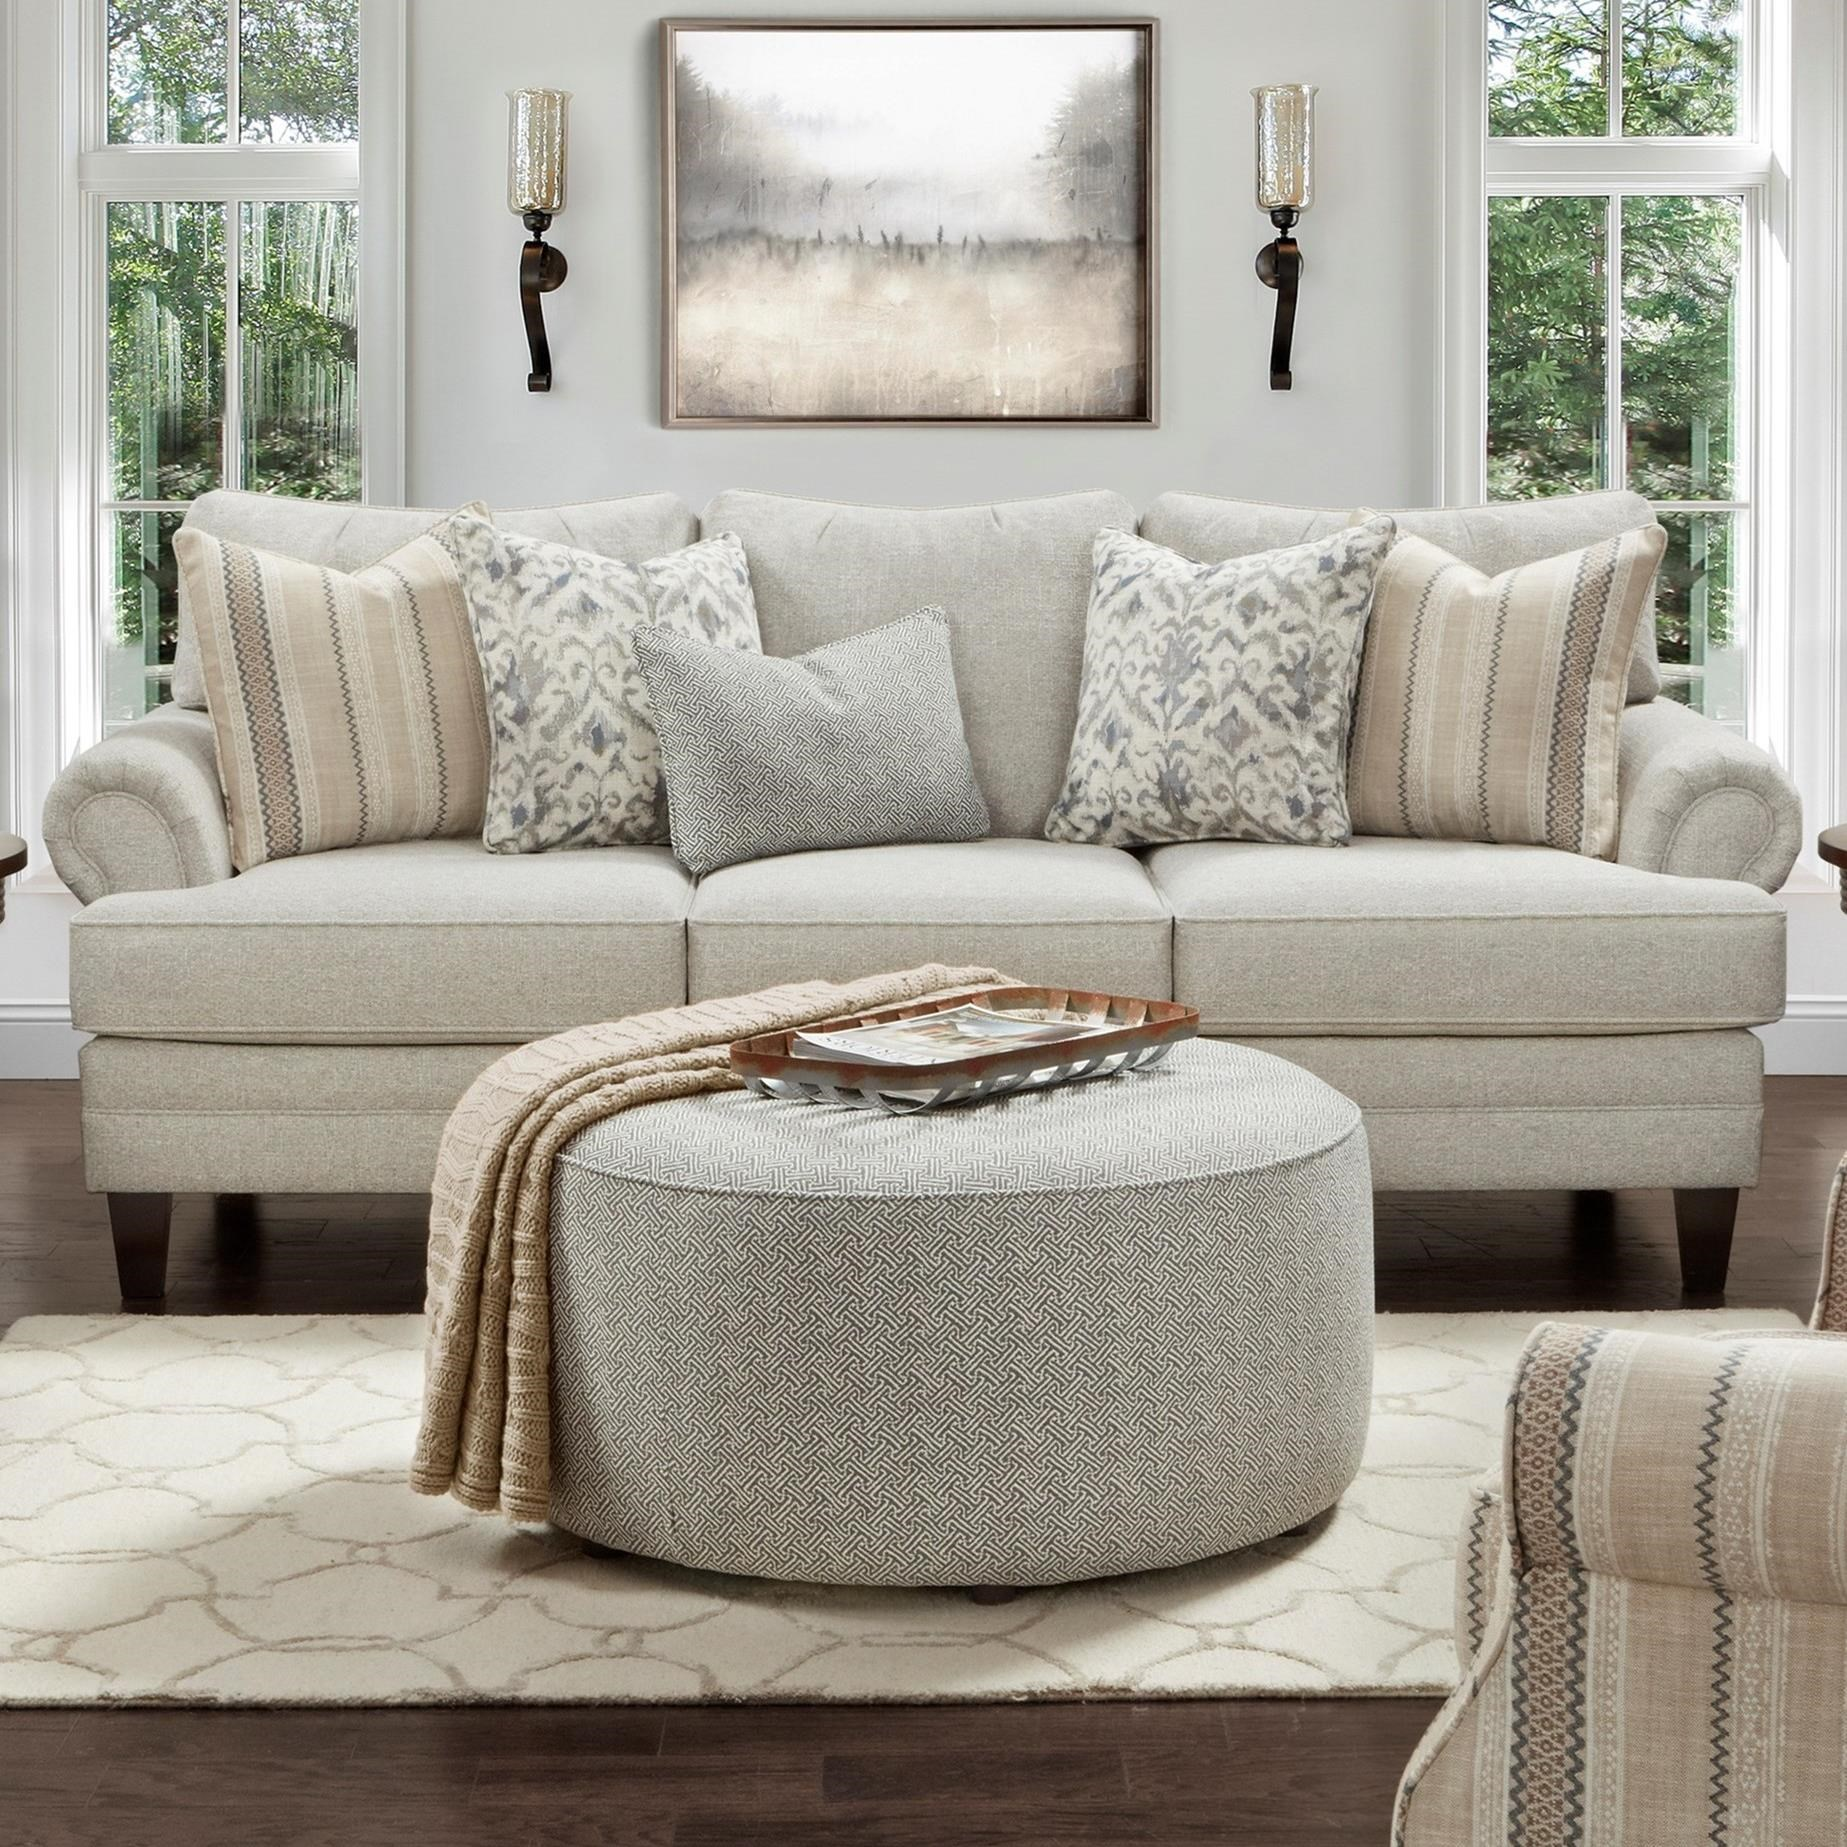 2800-KP Sofa by Fusion Furniture at Furniture Superstore - Rochester, MN